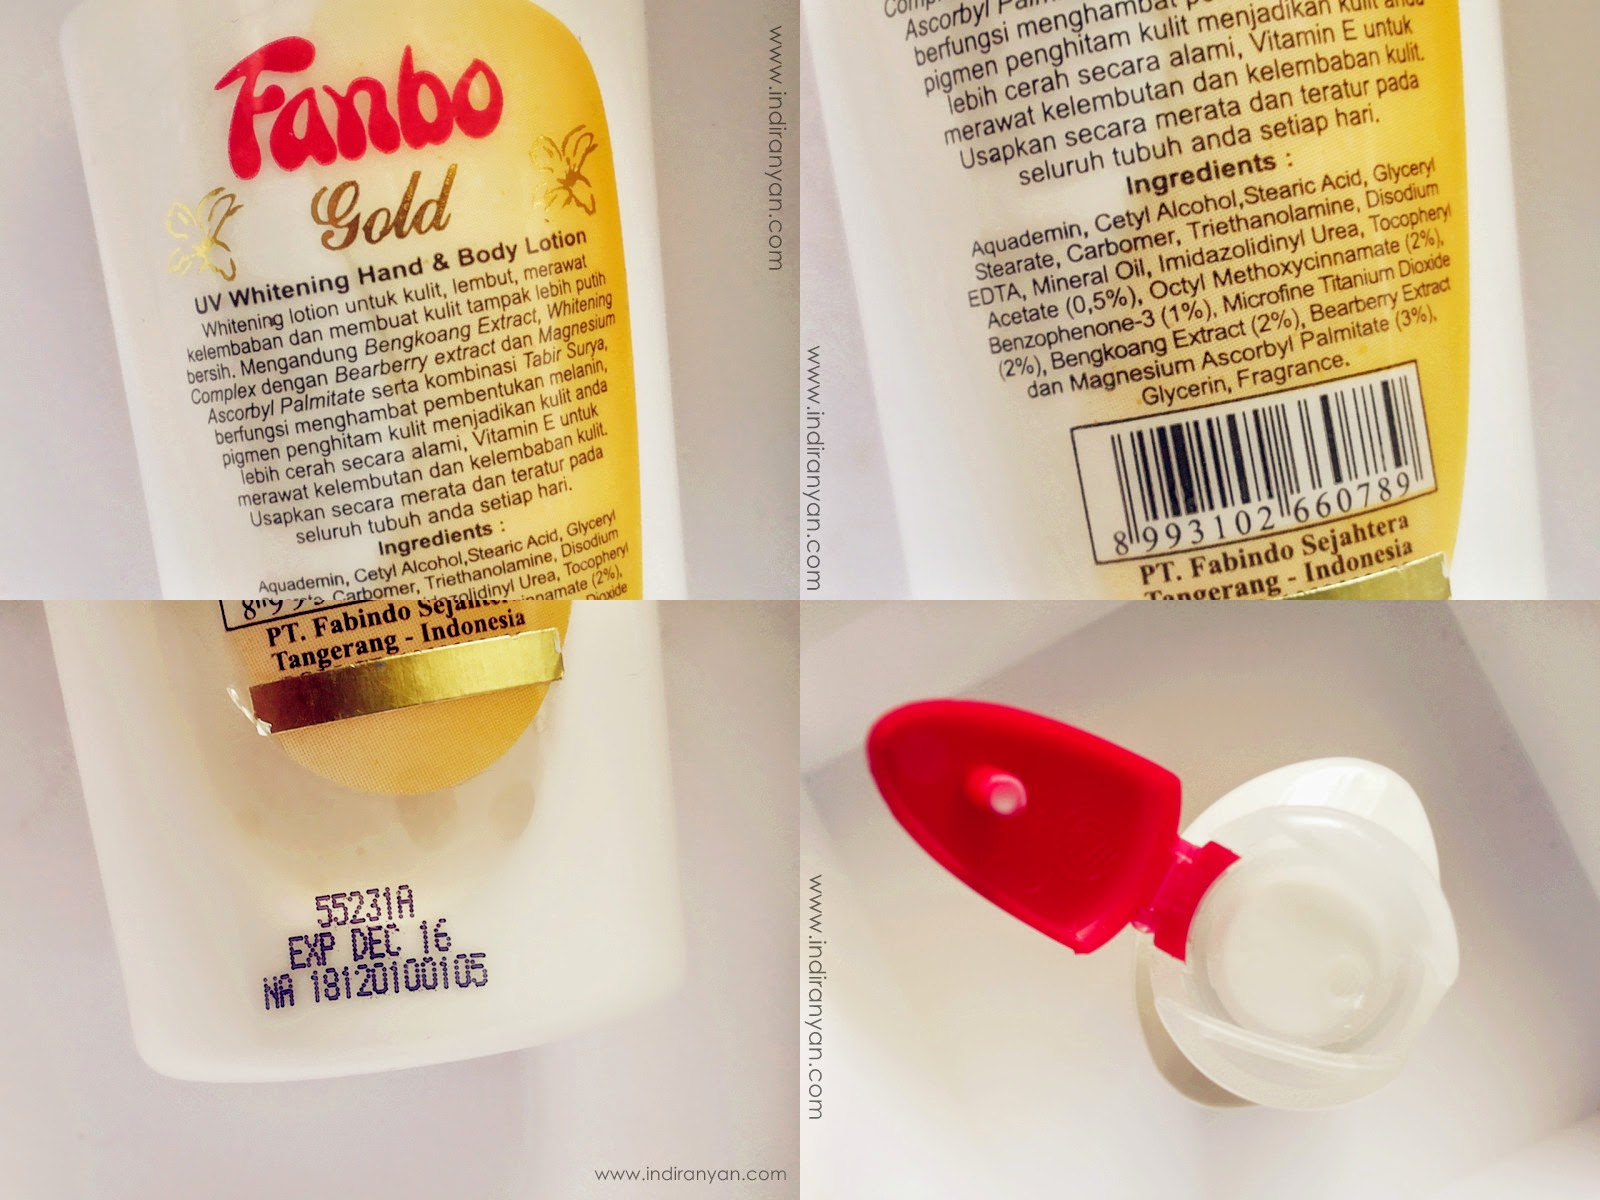 Fanbo Gold UV Whitening Hand & Body Lotion